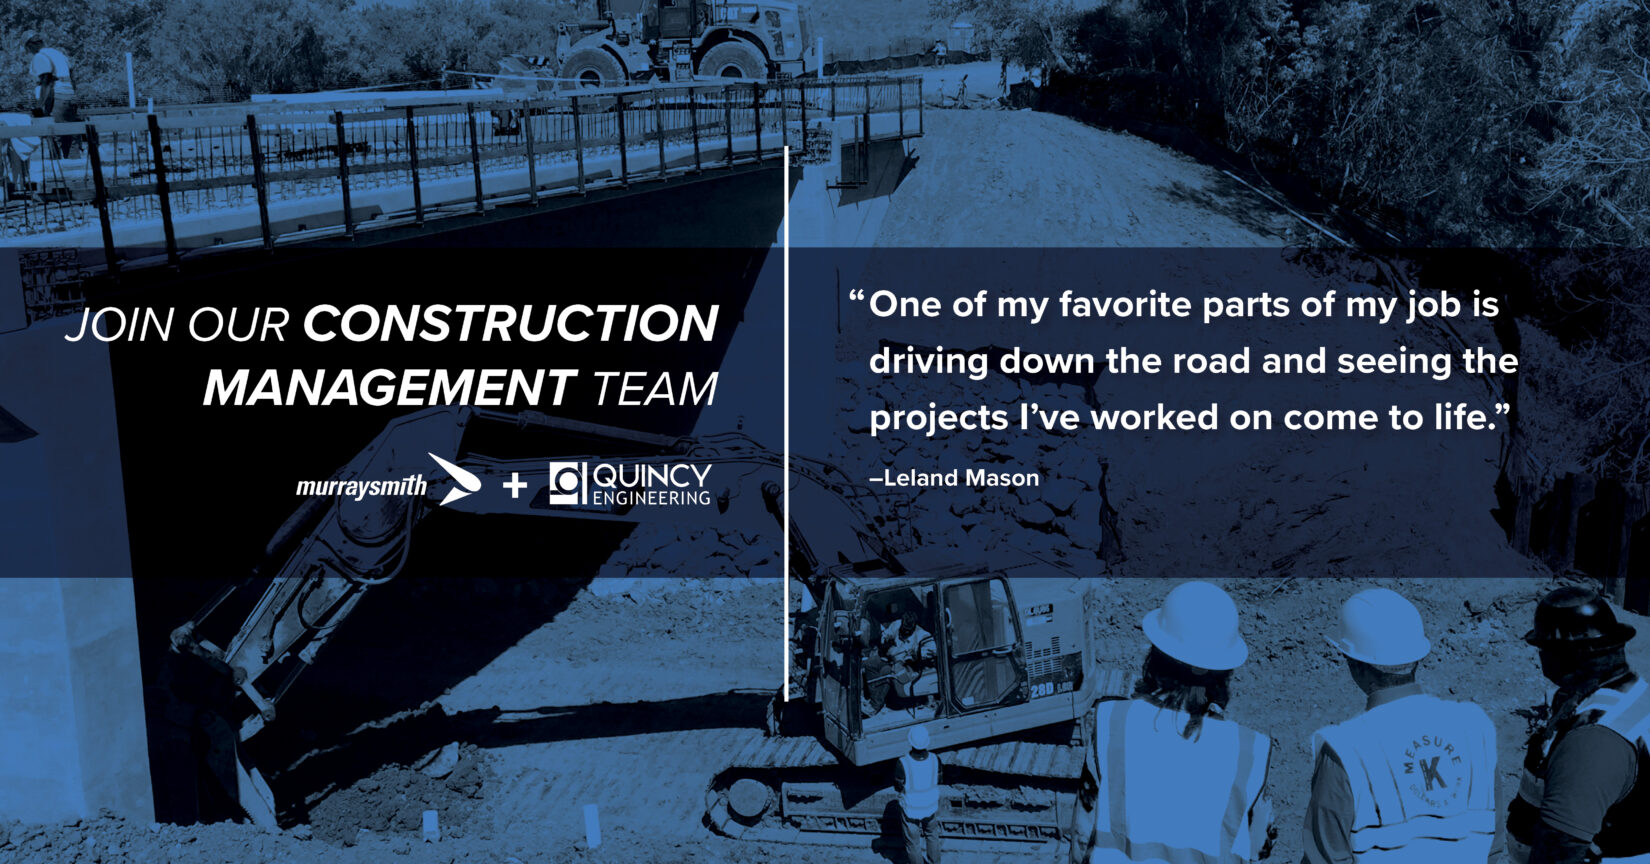 Two Reasons Construction Manager Leland Mason Loves His Job (Did We Mention We're Hiring?)